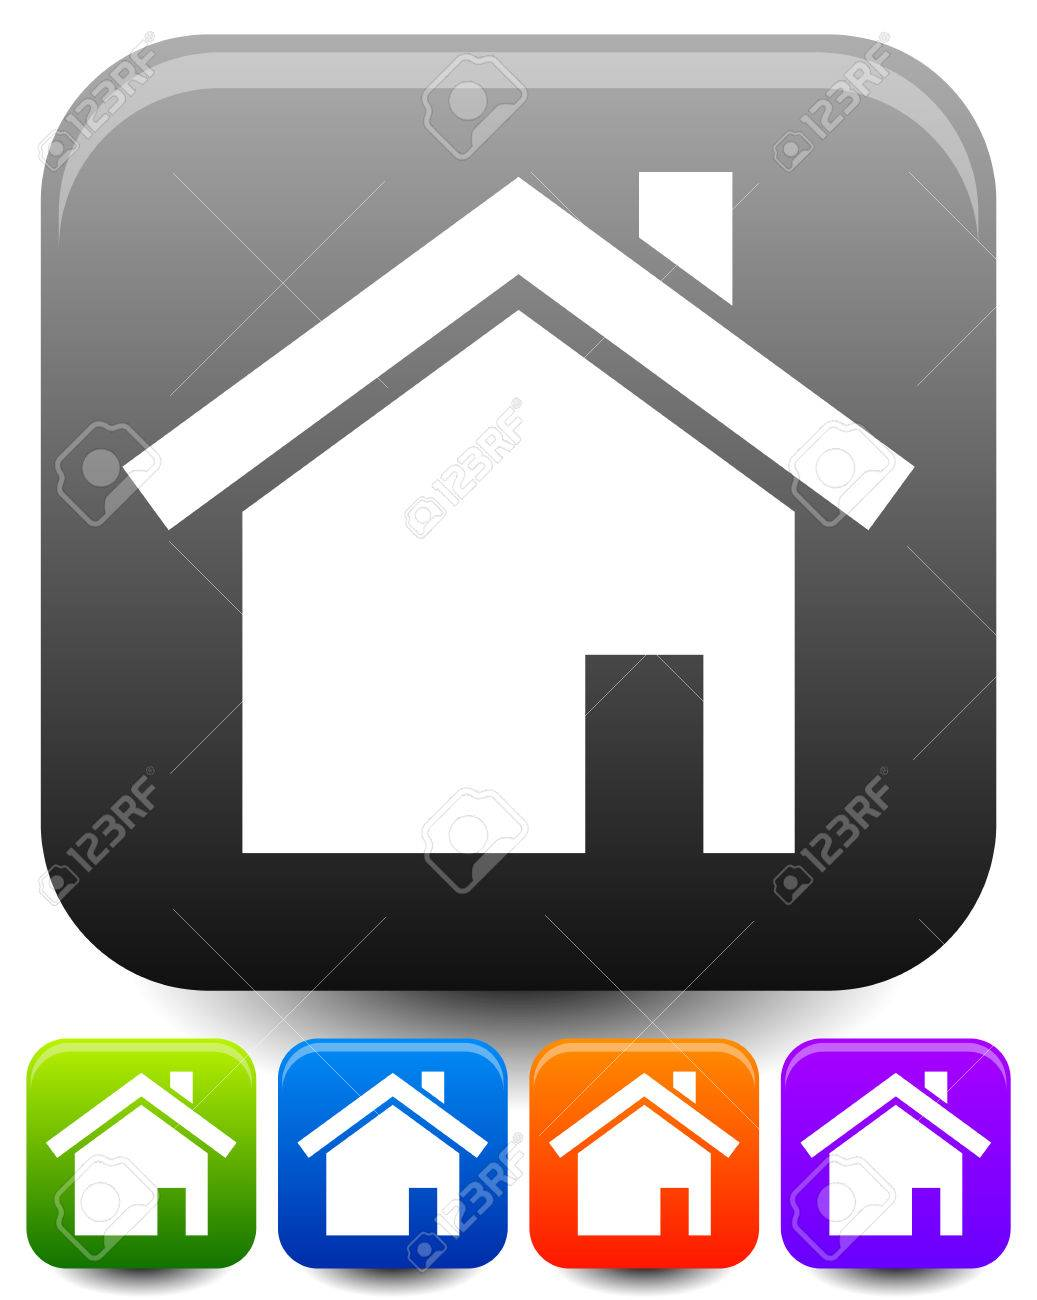 House Symbols On Rounded Squares With Highlight Effect Icons